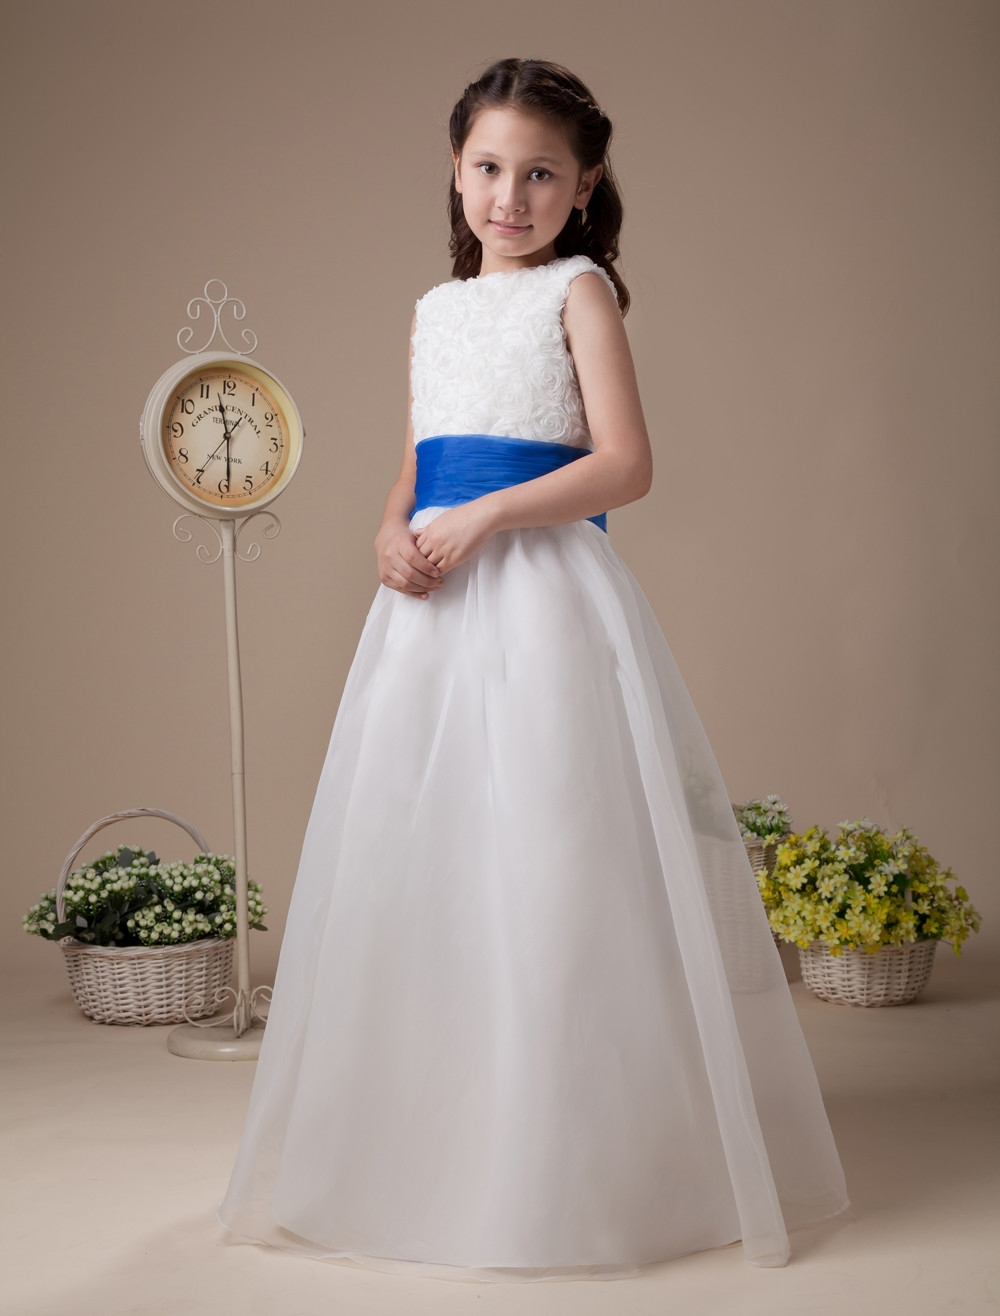 Cute high collar ruffle organza girls dresses flower girl royal blue cute high collar ruffle organza girls dresses flower girl royal blue sash kids evening gowns 2014 in flower girl dresses from weddings events on izmirmasajfo